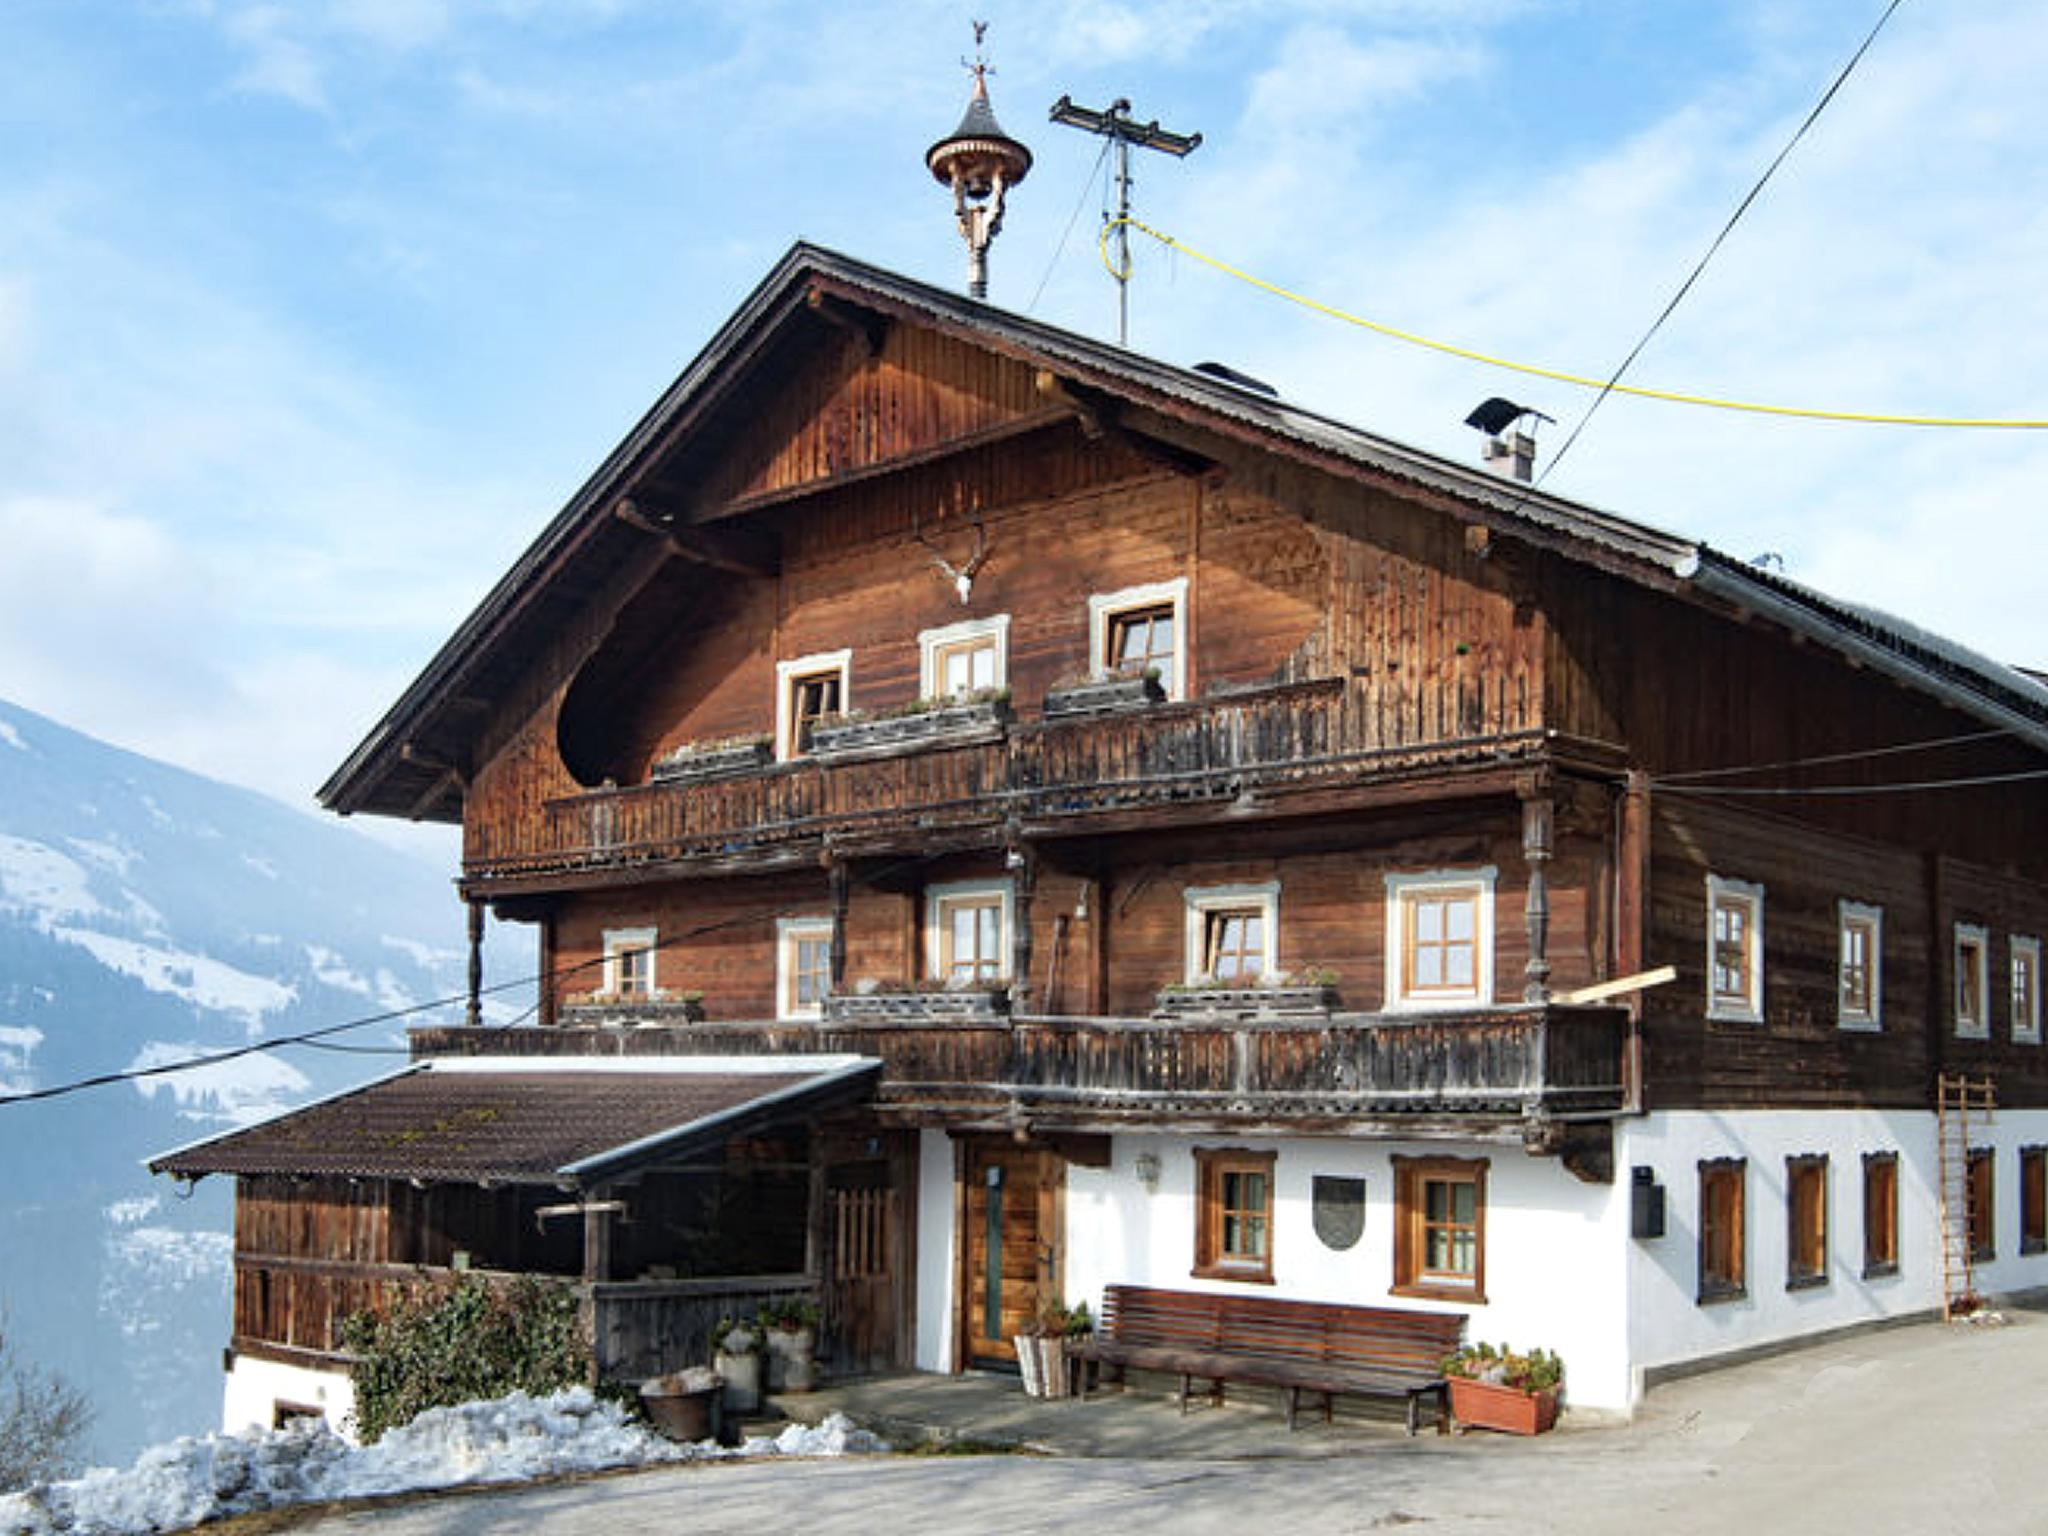 Apartment Pirchach Tirol